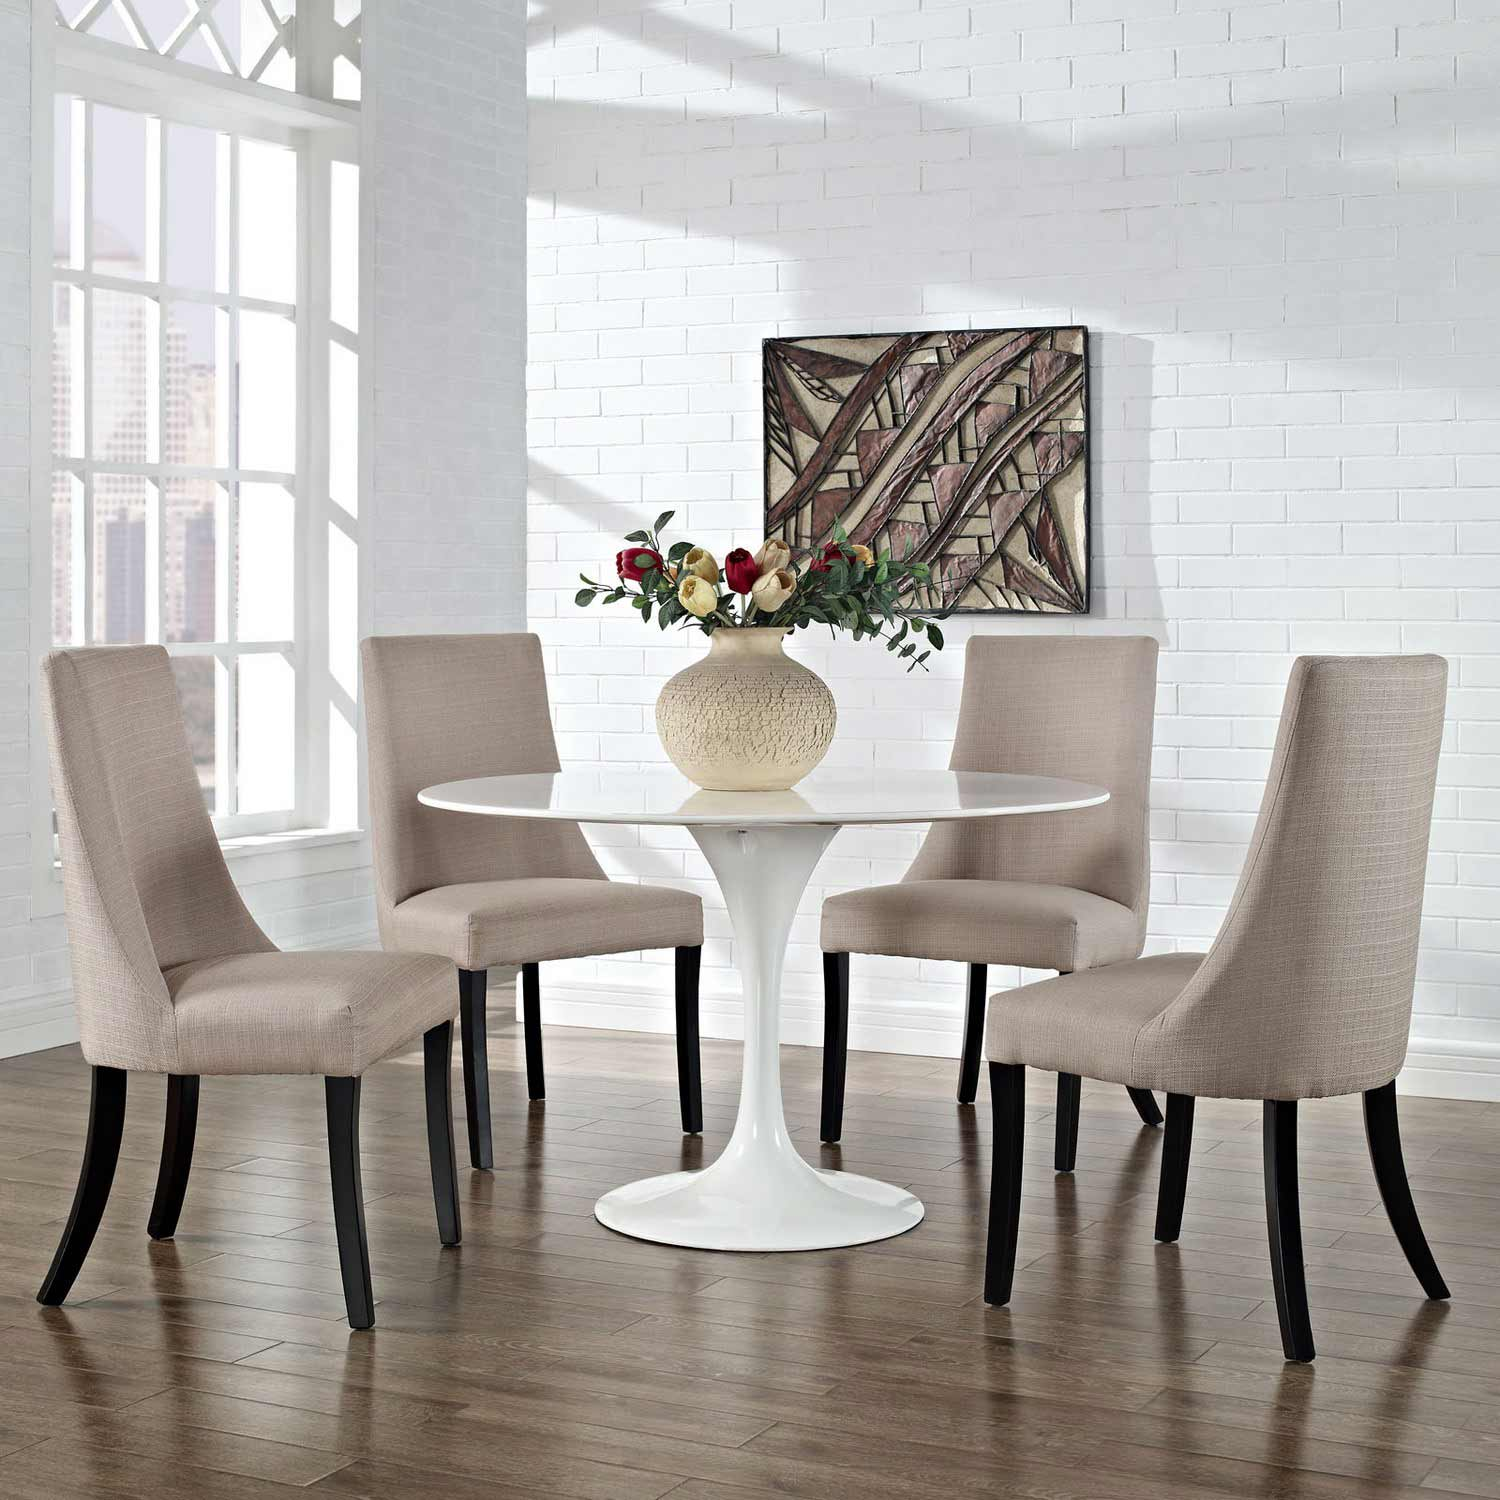 Modway Reverie Dining Side Chair Set of 4 - Beige